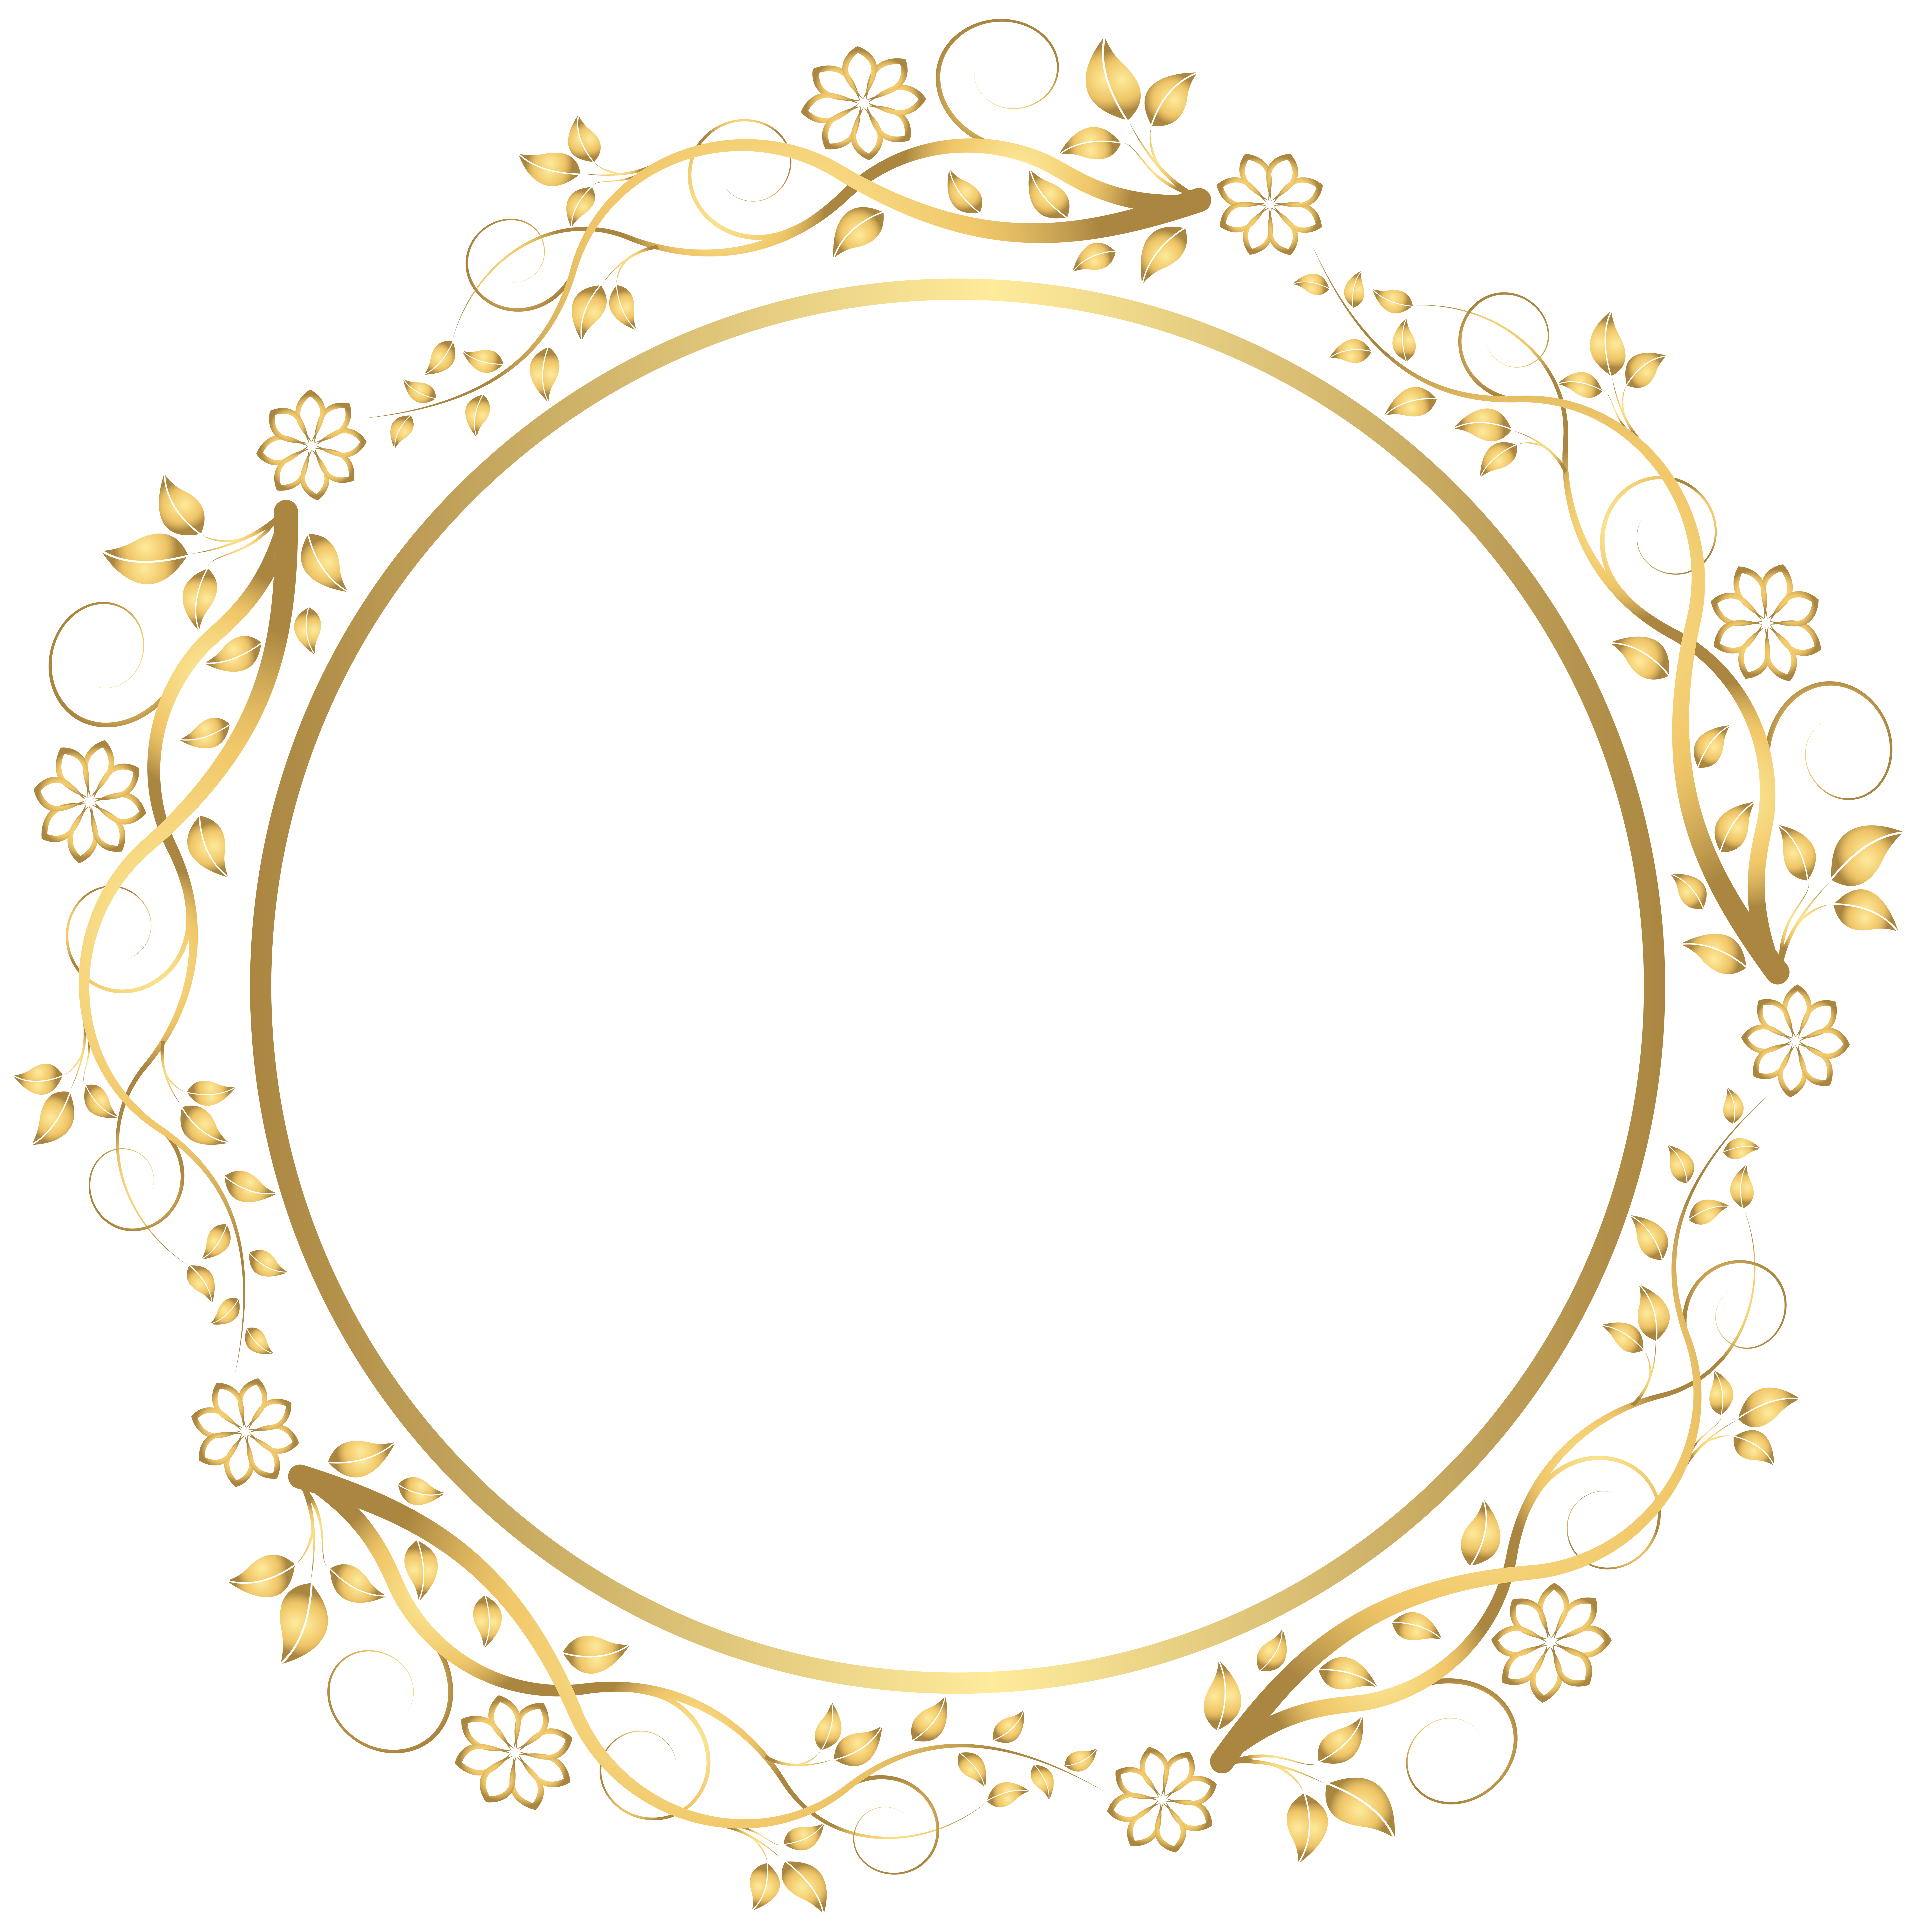 Circle flower clipart black and white Gold Round Floral Border Transparent PNG Clip Art Image | Gallery ... black and white